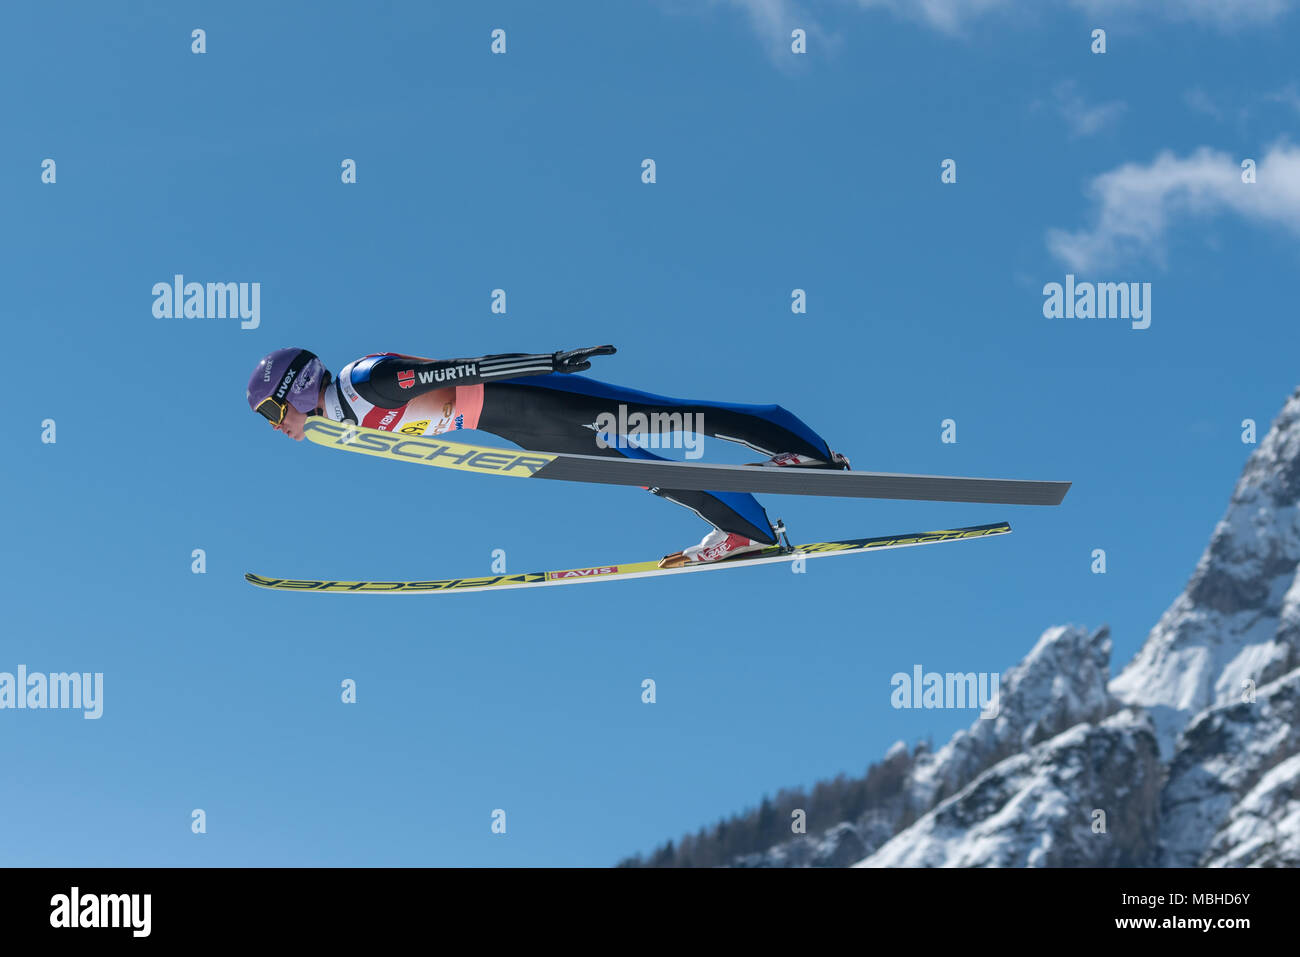 PLANICA, SLOVENIA - MARCH 24 2018 : Fis World Cup Ski Jumping Final - WELLINGER Andreas GER - Stock Image